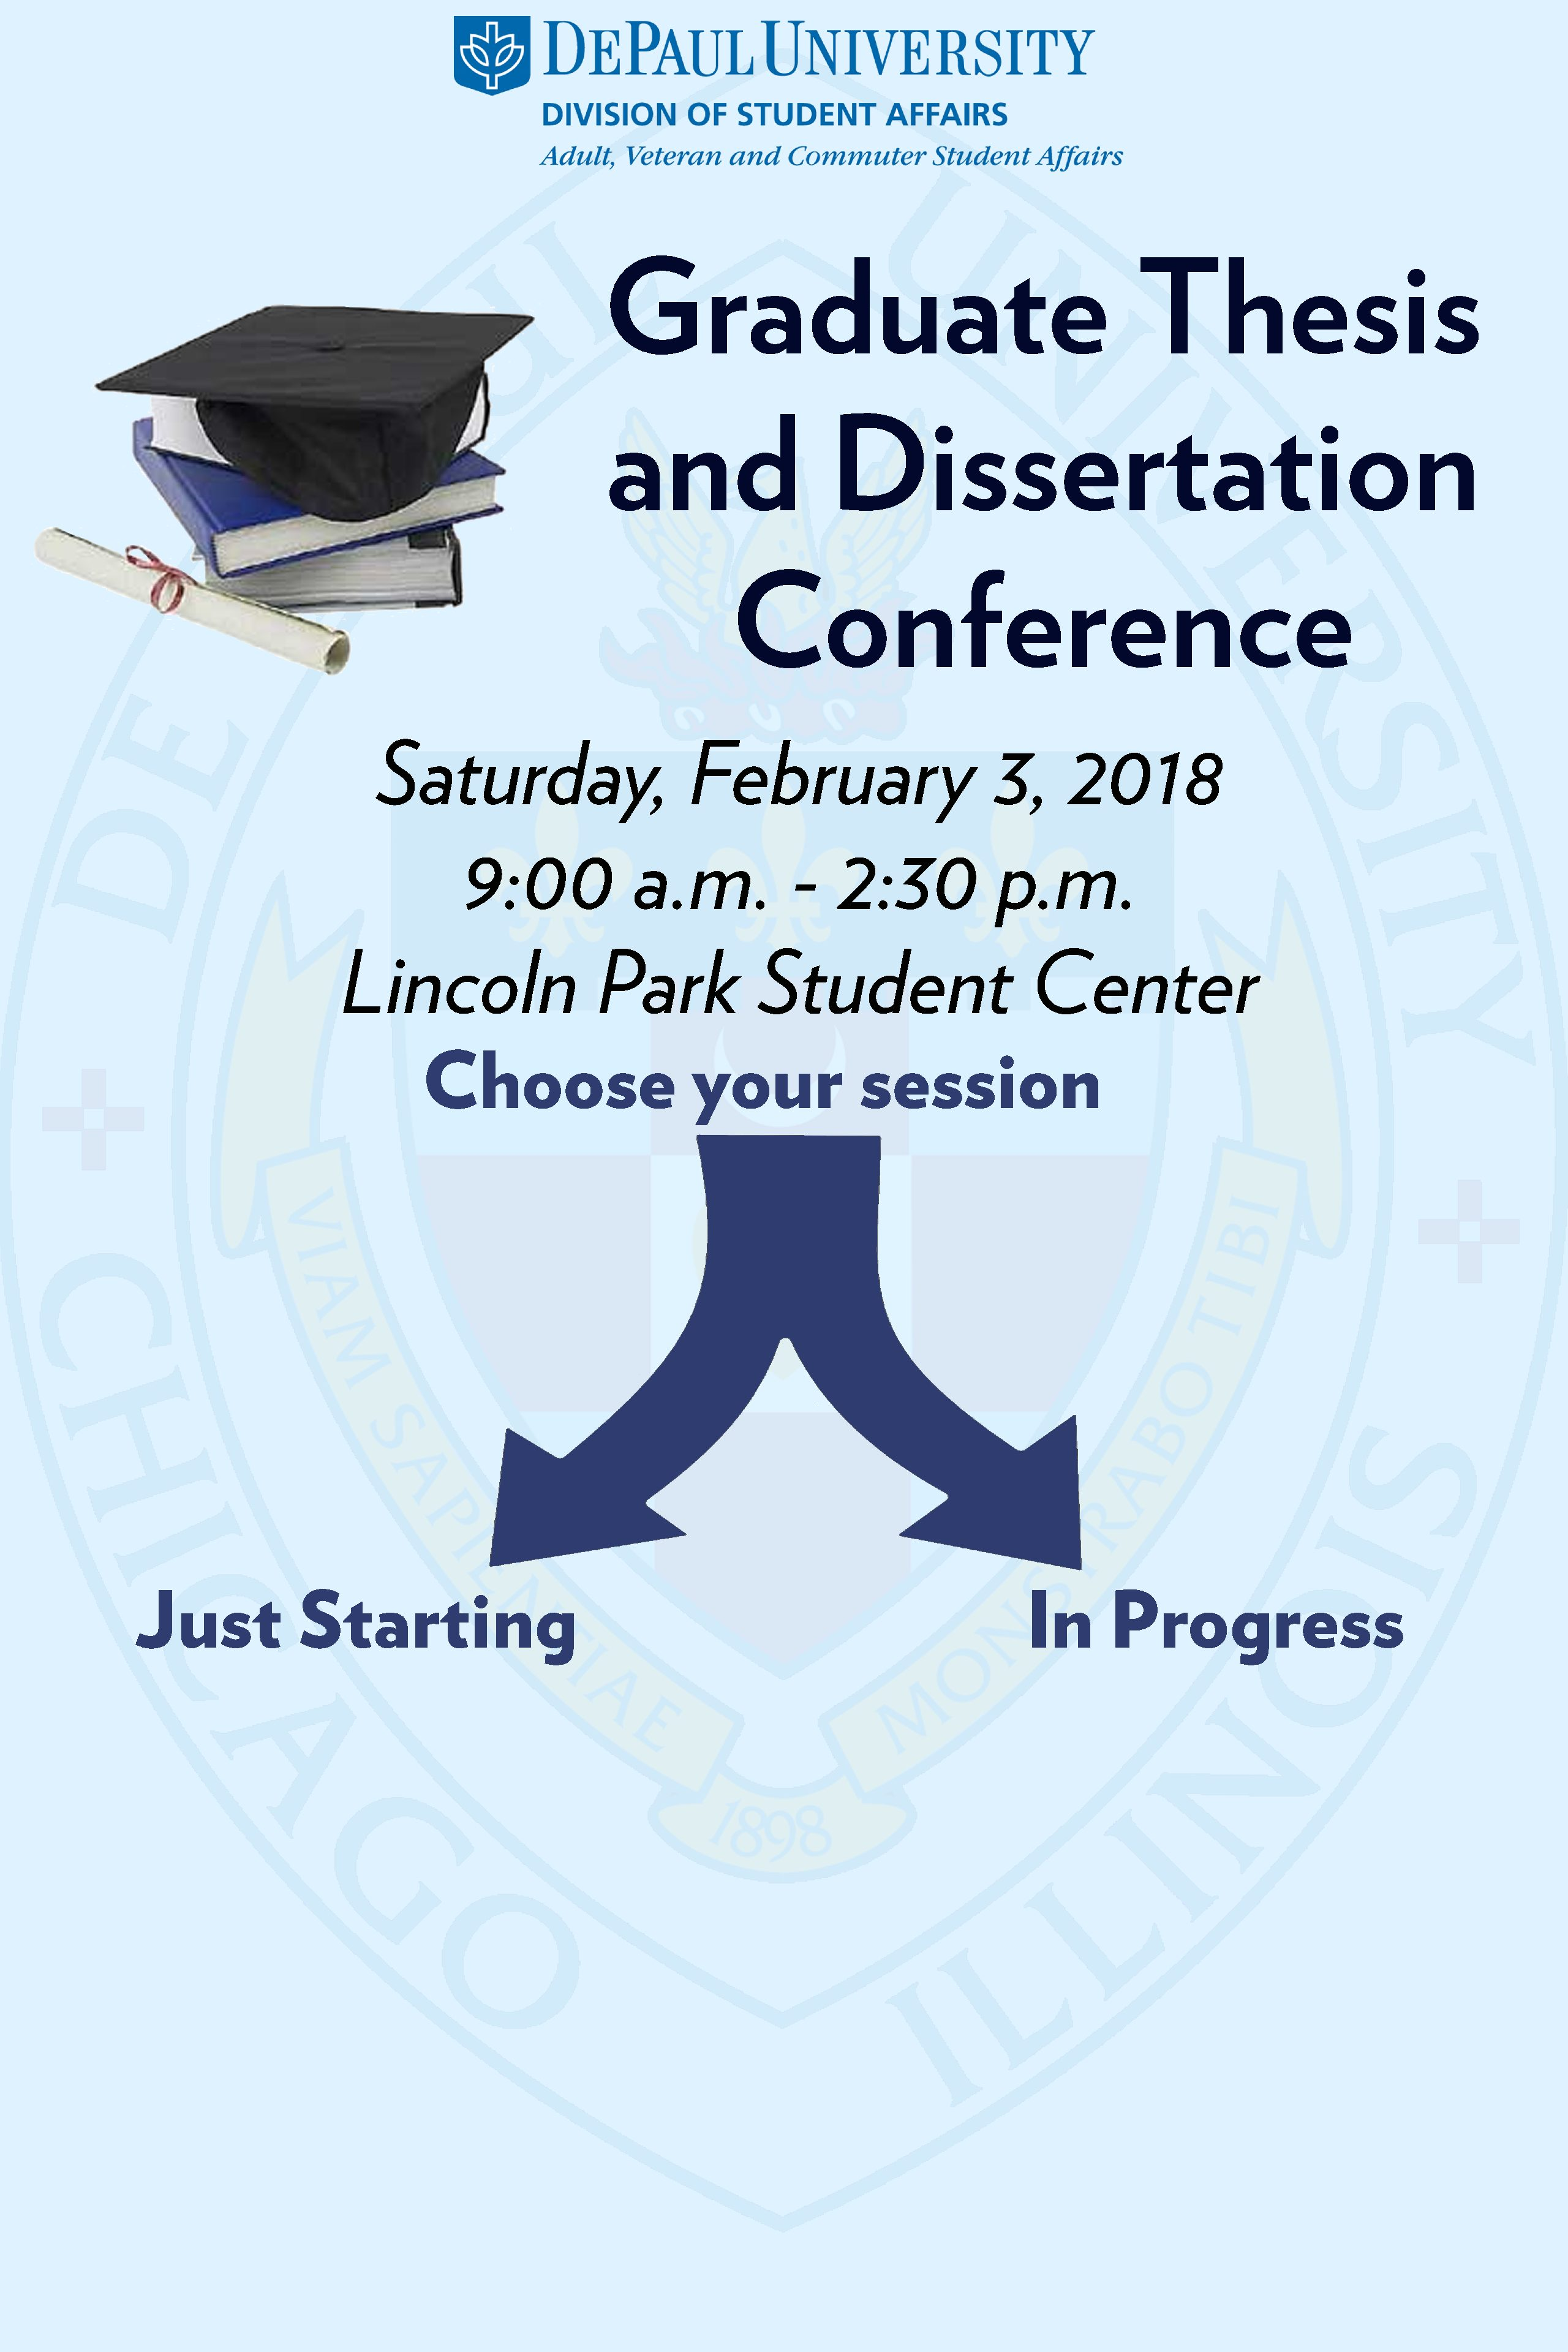 Dissertation proposal conference call